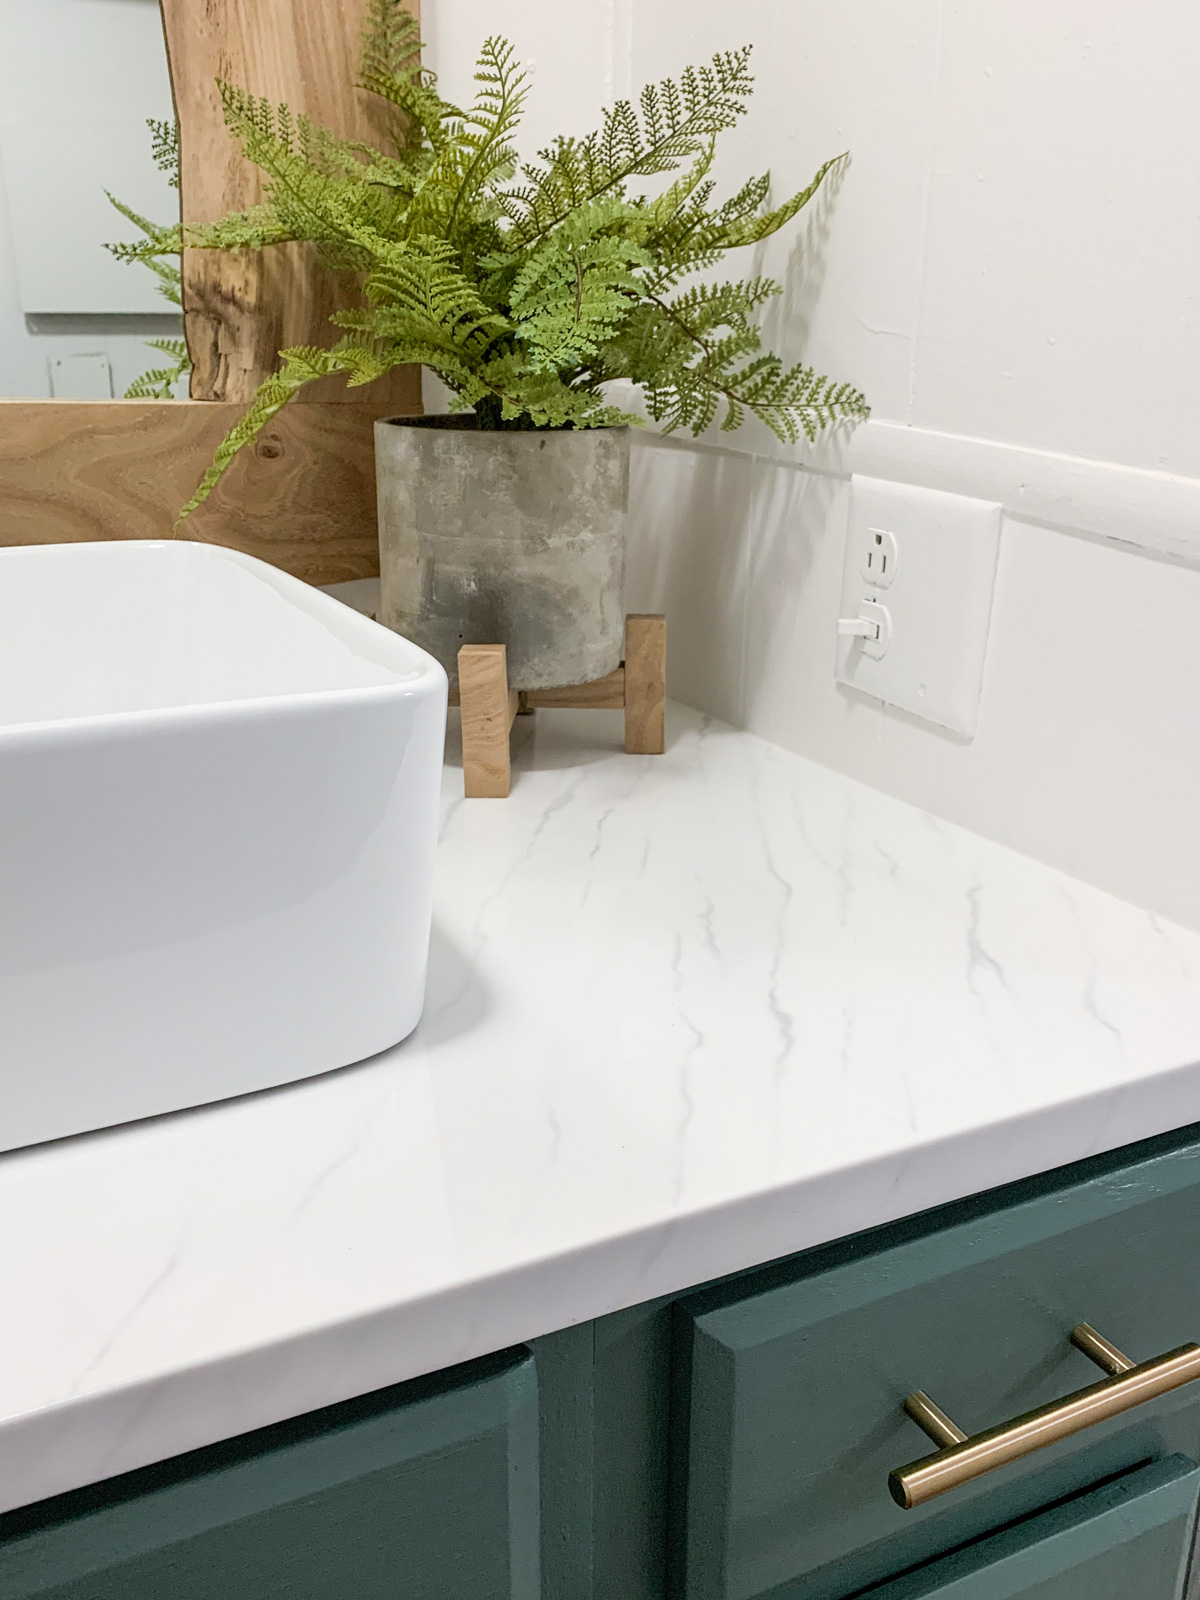 a close up photo of DIY Marble Resin Countertop